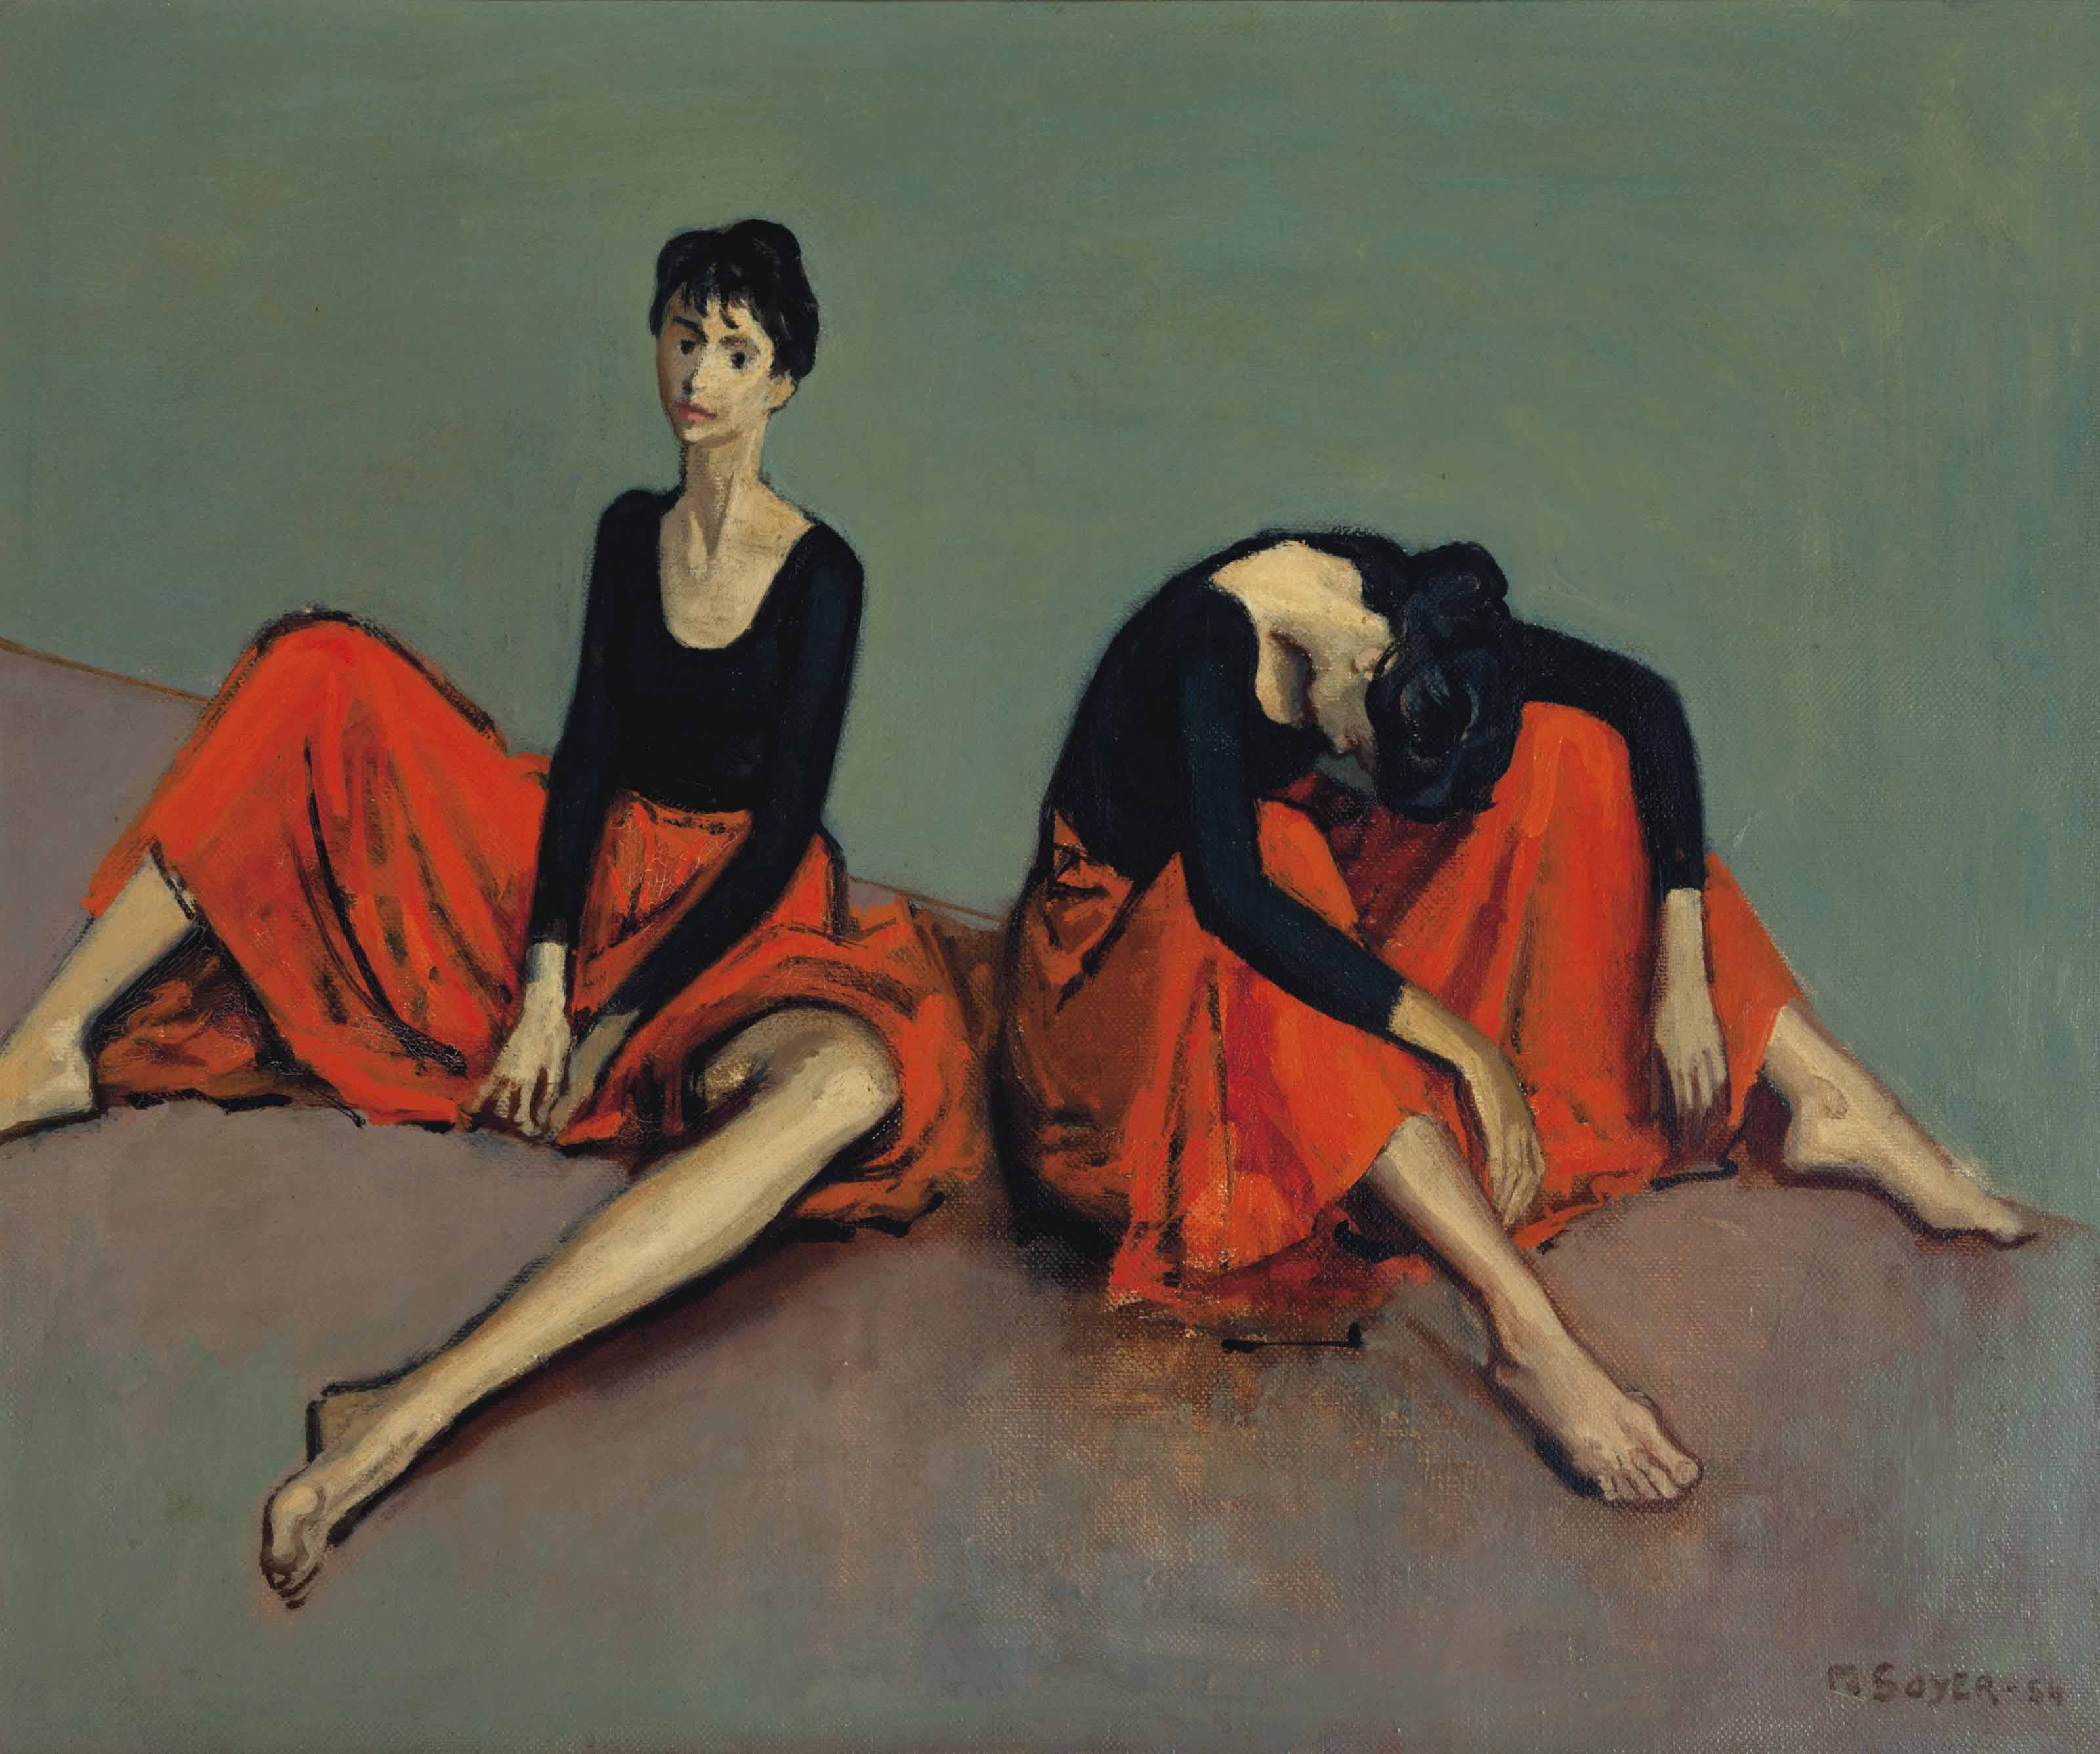 Moses Soyer (American, 1899-19